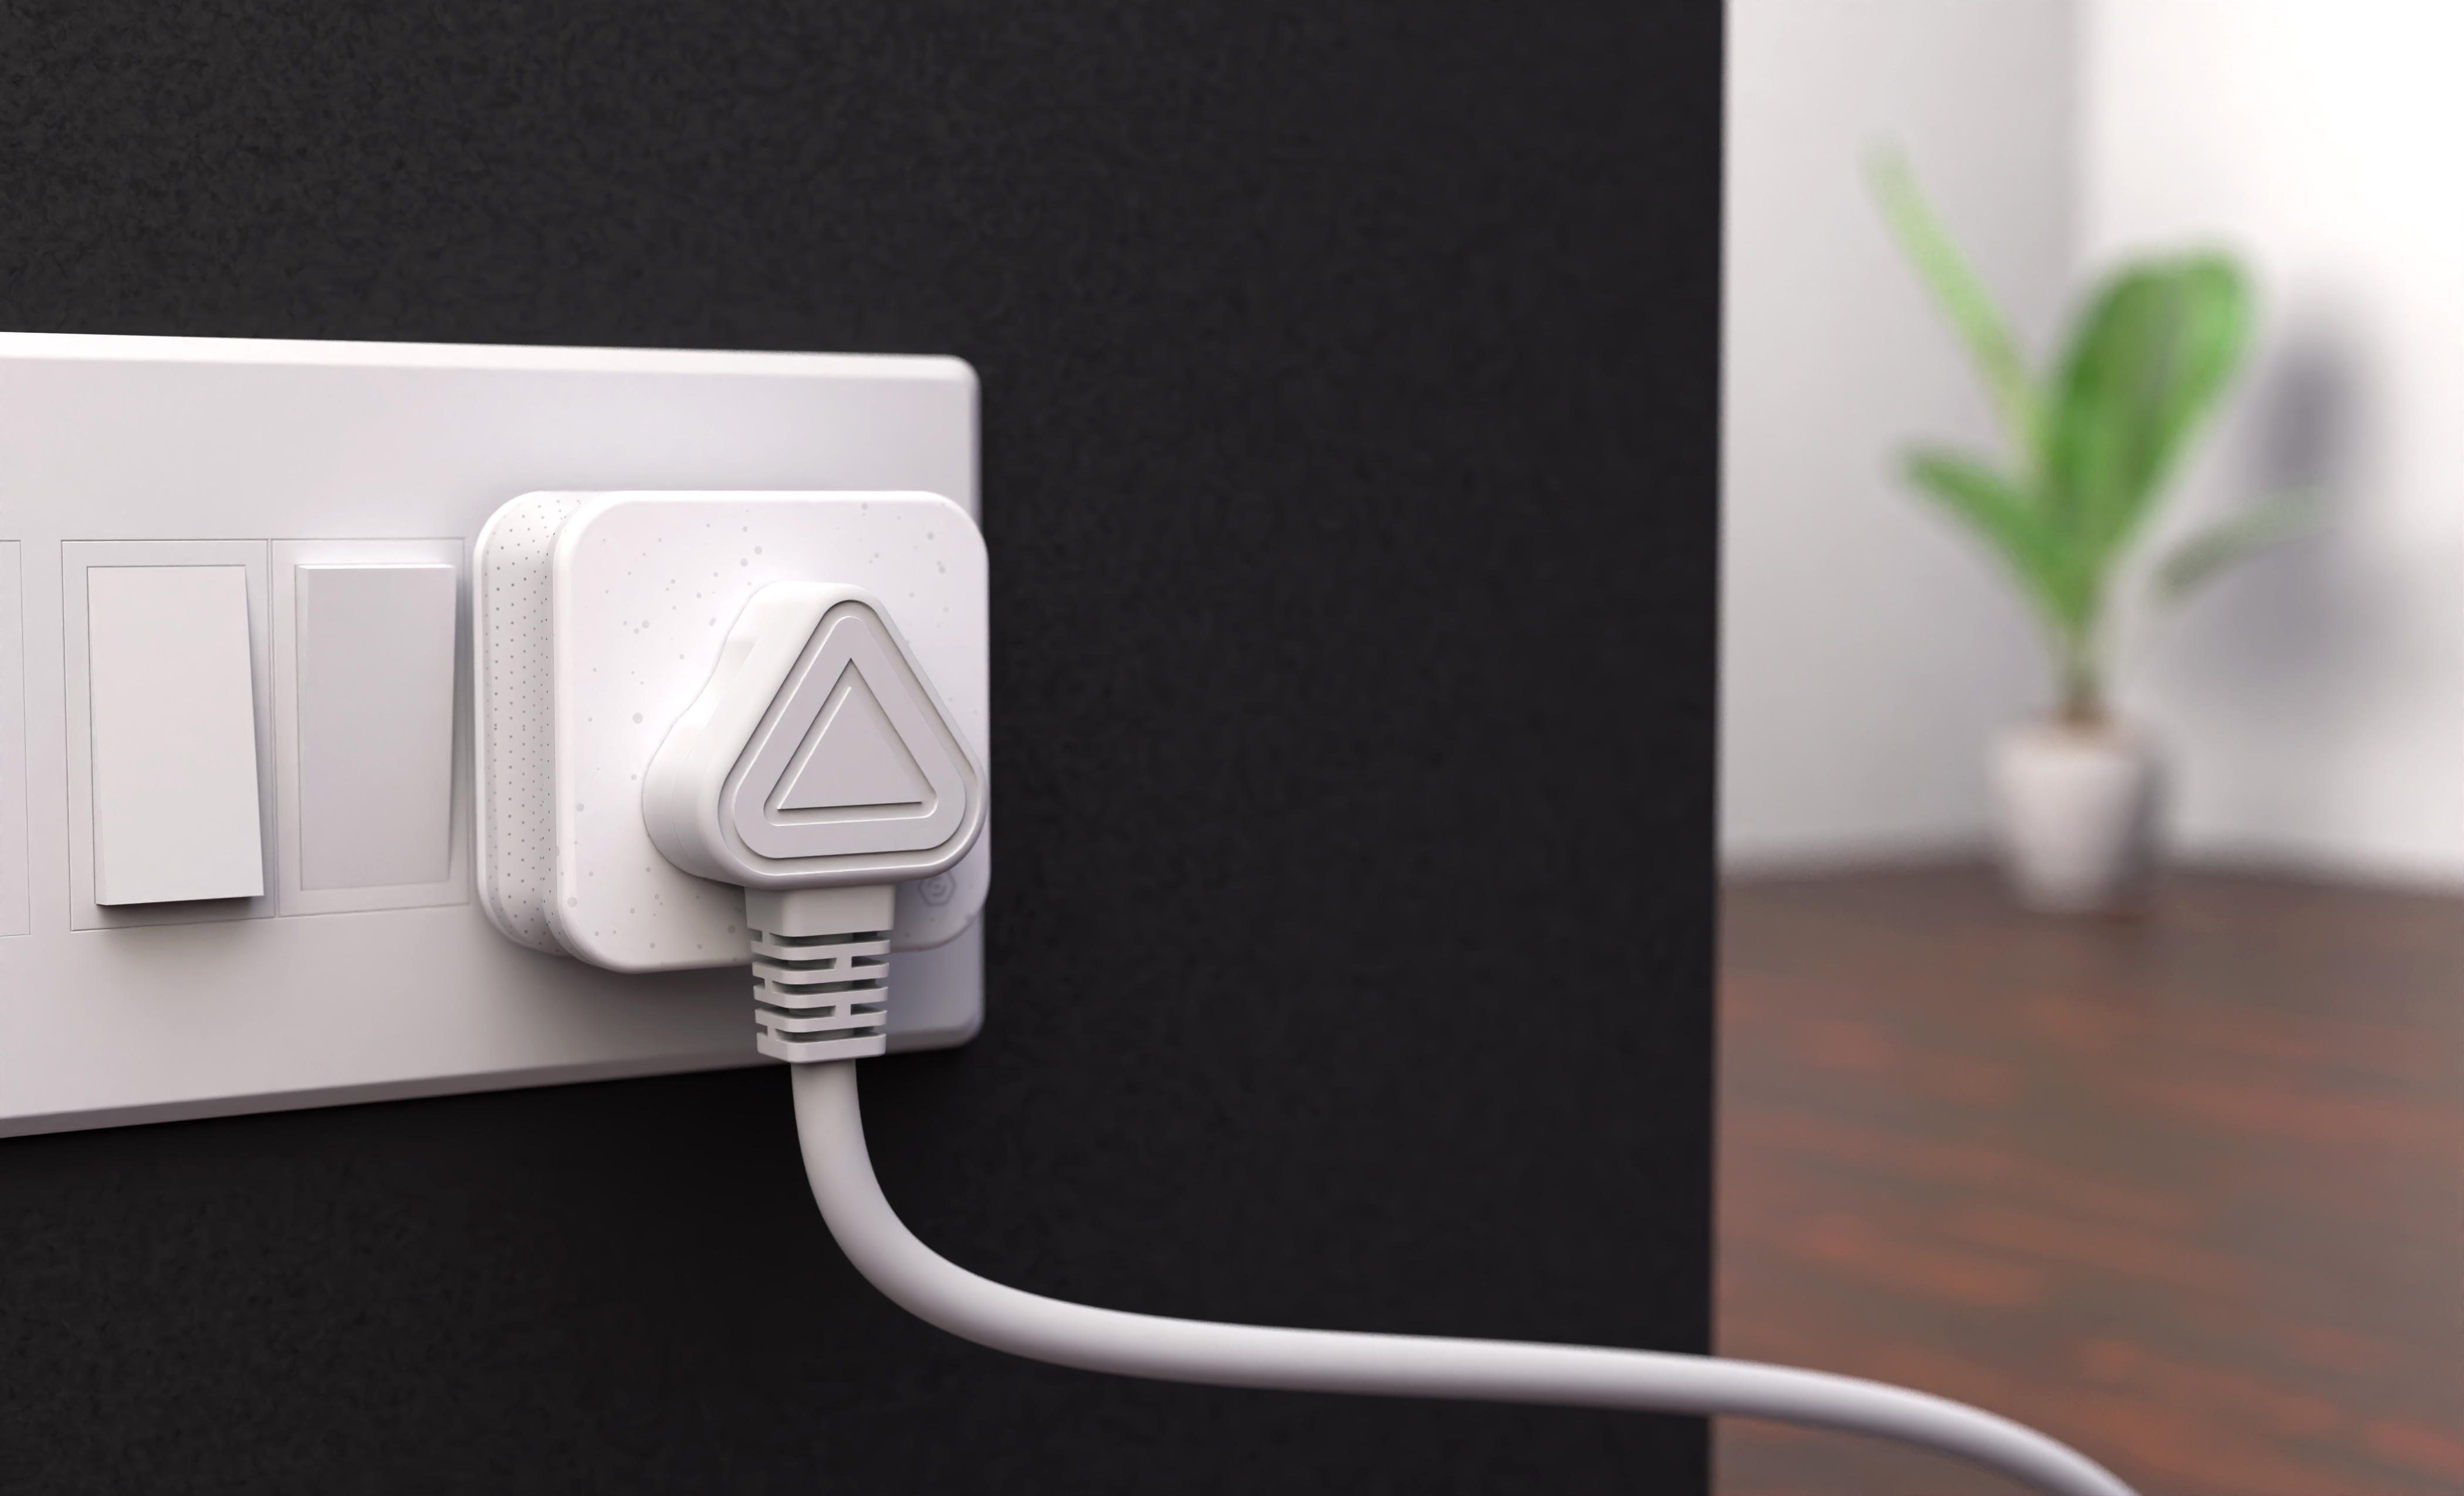 Most power strips, surge protectors and power adapters look like industrial and utilitarian products because they don't really do much. Other than powering devices up and down manually. A lot more people have started to incorporate smart plugs in their homes to convert them into smart homes. Now, smart plugs require a more refined design since they are consumer technology products rather than just utilitarian products. The Simon Smart Plug not only allows users to remotely power up and down appliances, but it also lets them track the energy consumption, dim light and create schedules for their devices. The smart plug's soft and inviting form factor positions it in the world of connected devices. The subtle LED indicator seamlessly integrates the user interface with the hardware to create a delightful experience.